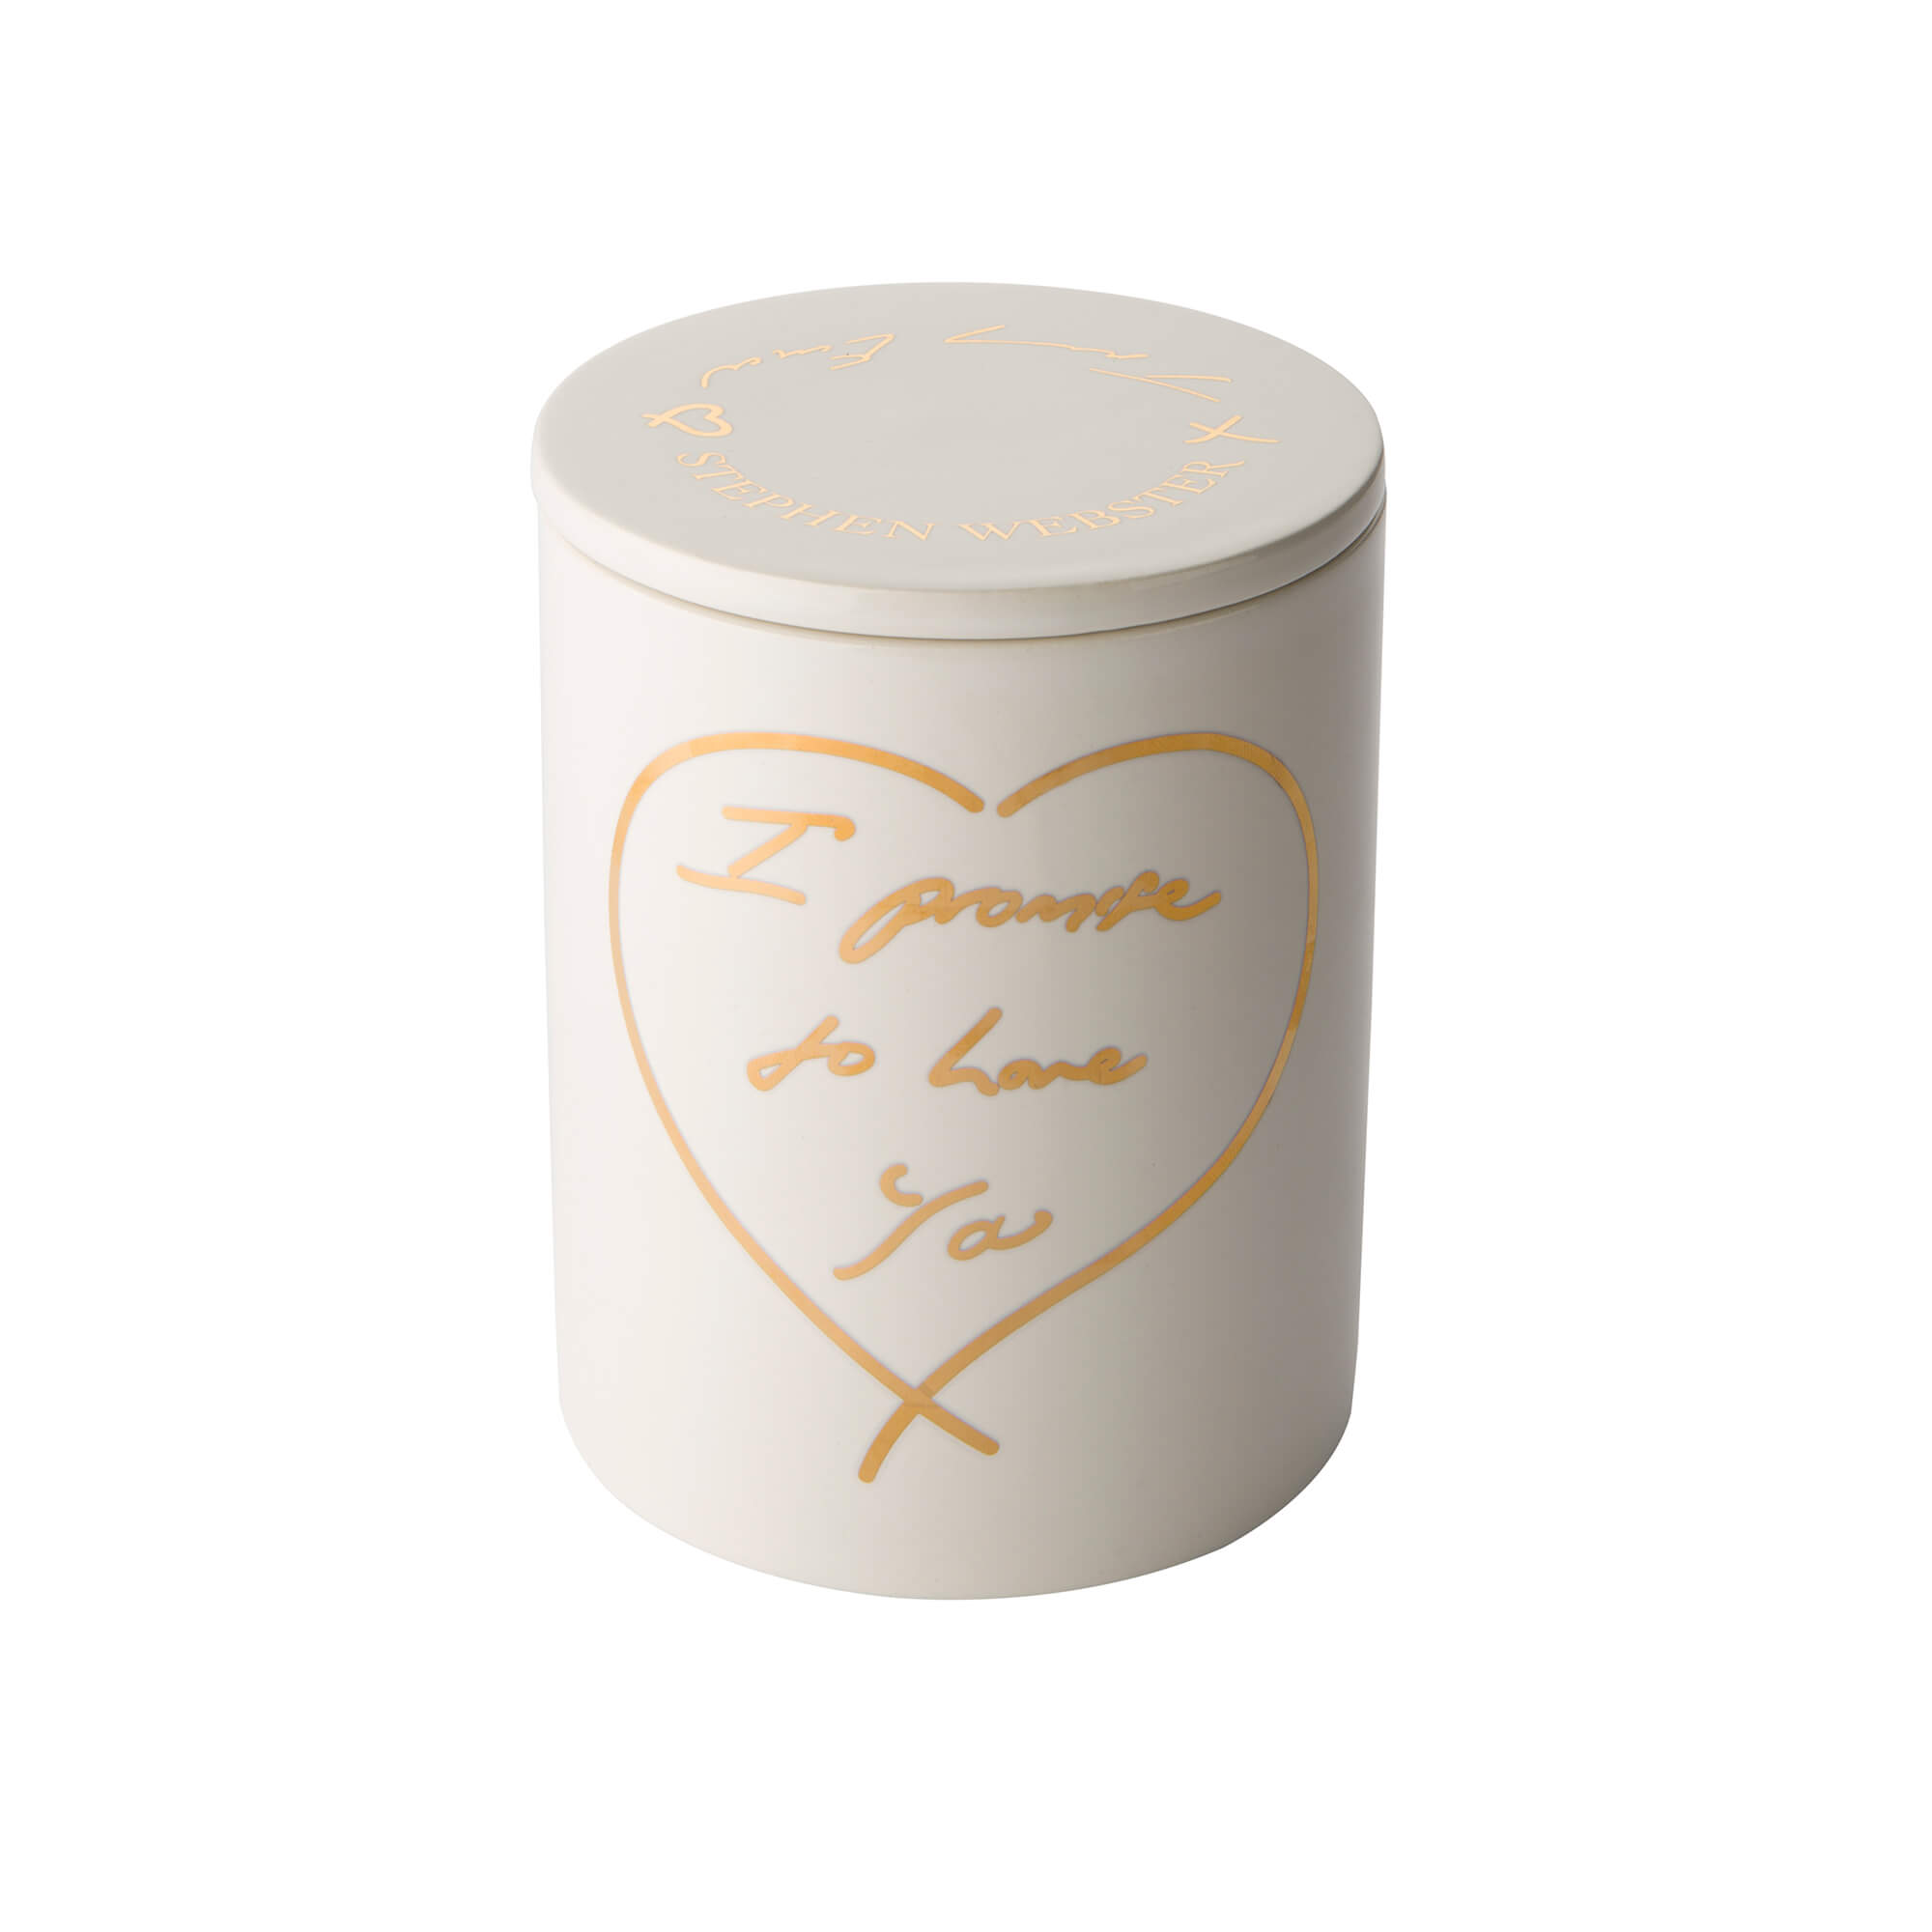 Tracey Emin Scented Neon Candle | Stephen Webster